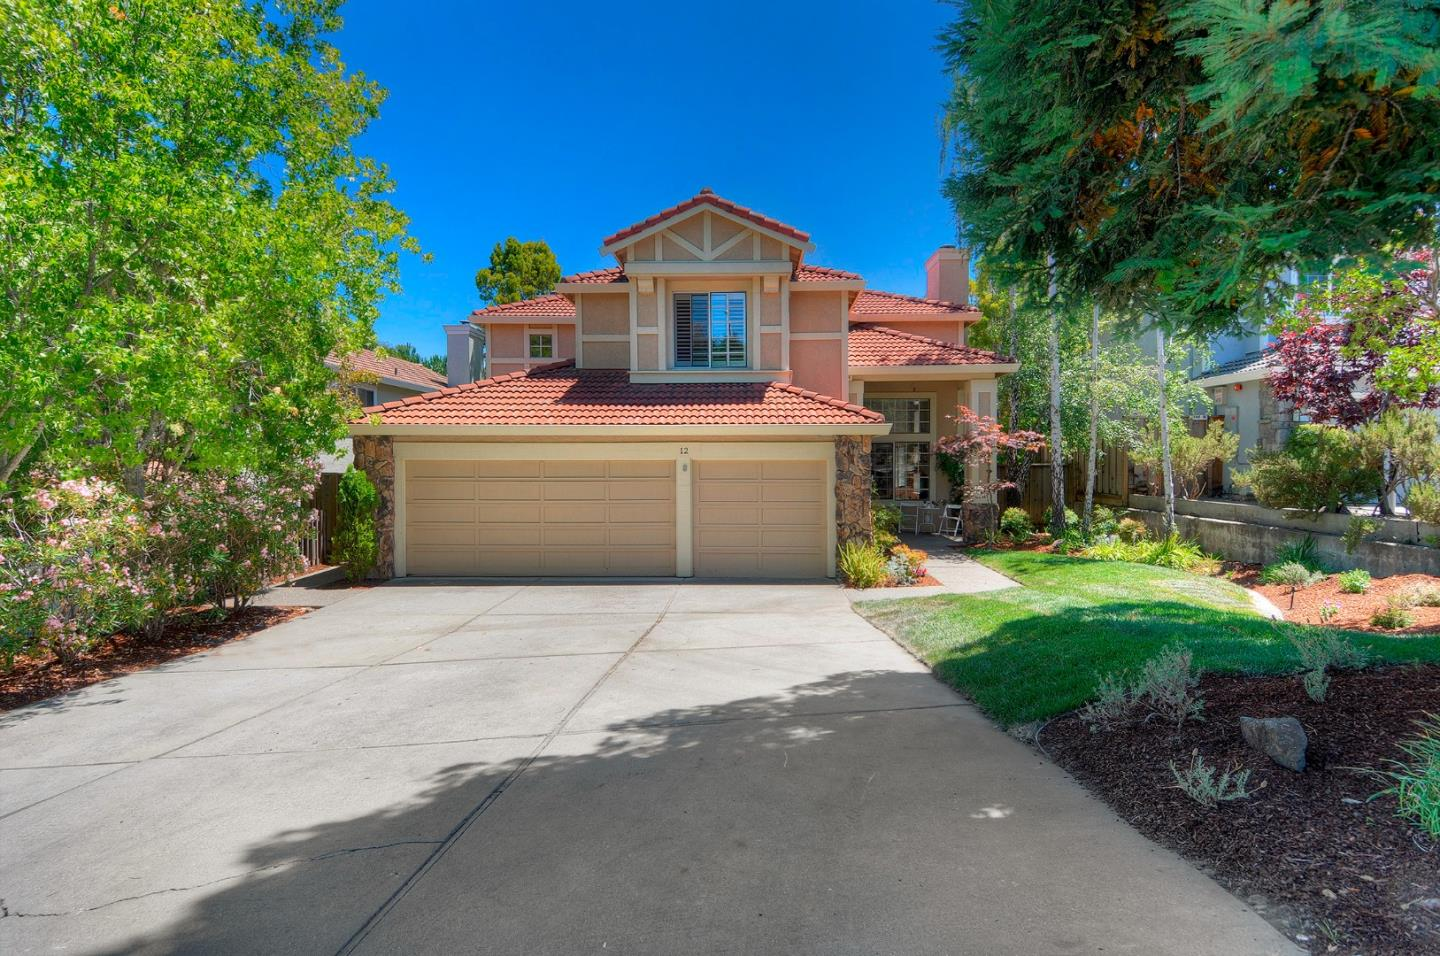 Single Family Home for Sale at 12 Elston Court San Carlos, California 94070 United States